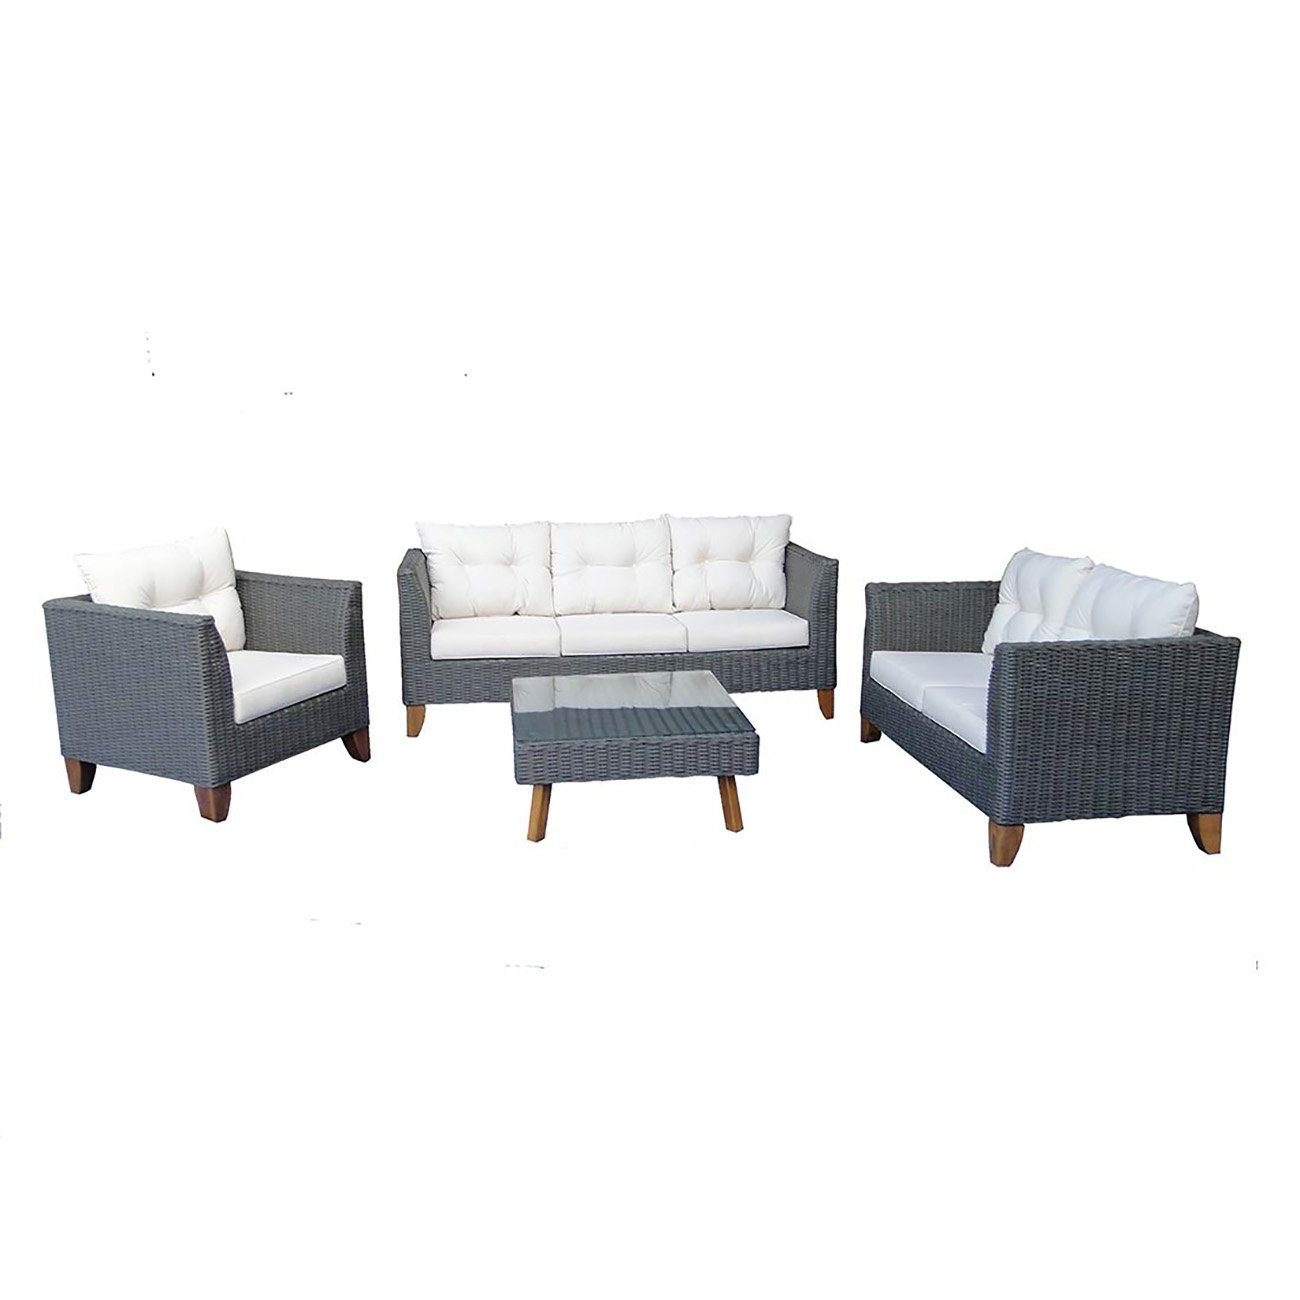 gartenmbel lounge set affordable clp polyrattan. Black Bedroom Furniture Sets. Home Design Ideas